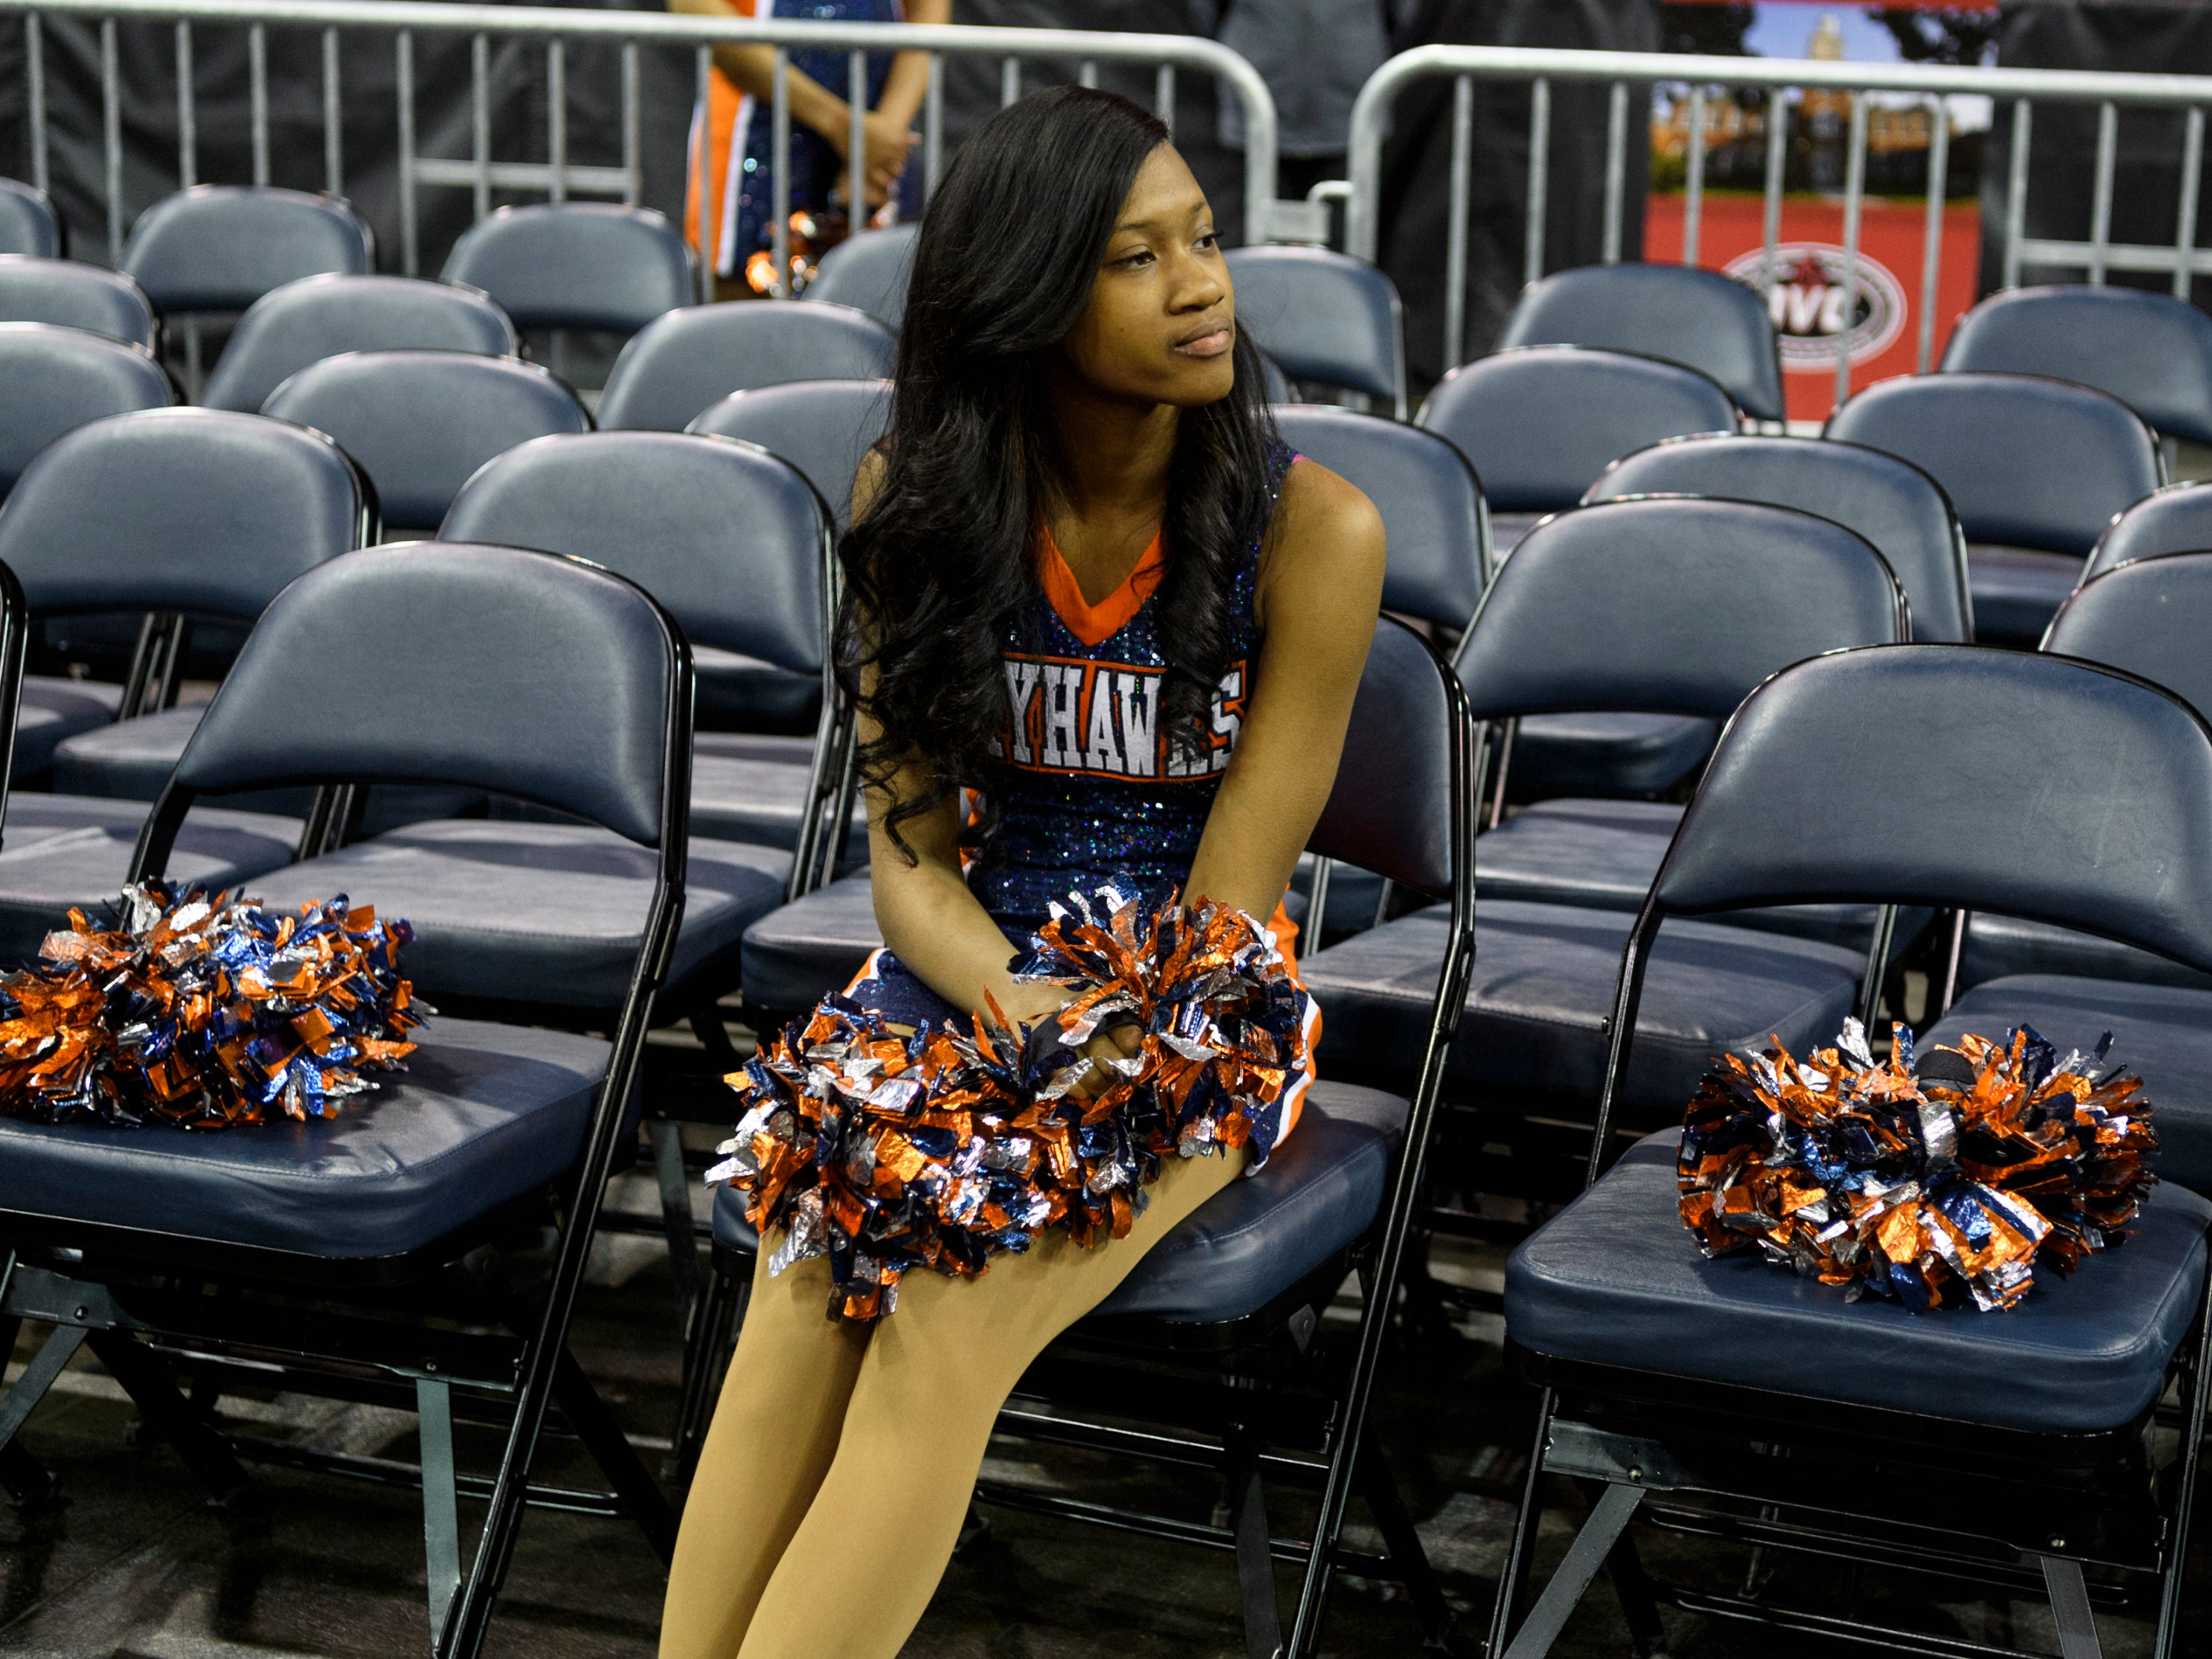 Jamesha Shelton, a member of the University of Tennessee Martin dance team, takes a moment to relax as she watches the women's basketball game against Murray State at the Ohio Valley Conference tournament in Evansville's Ford Center, Thursday, March 7, 2019.